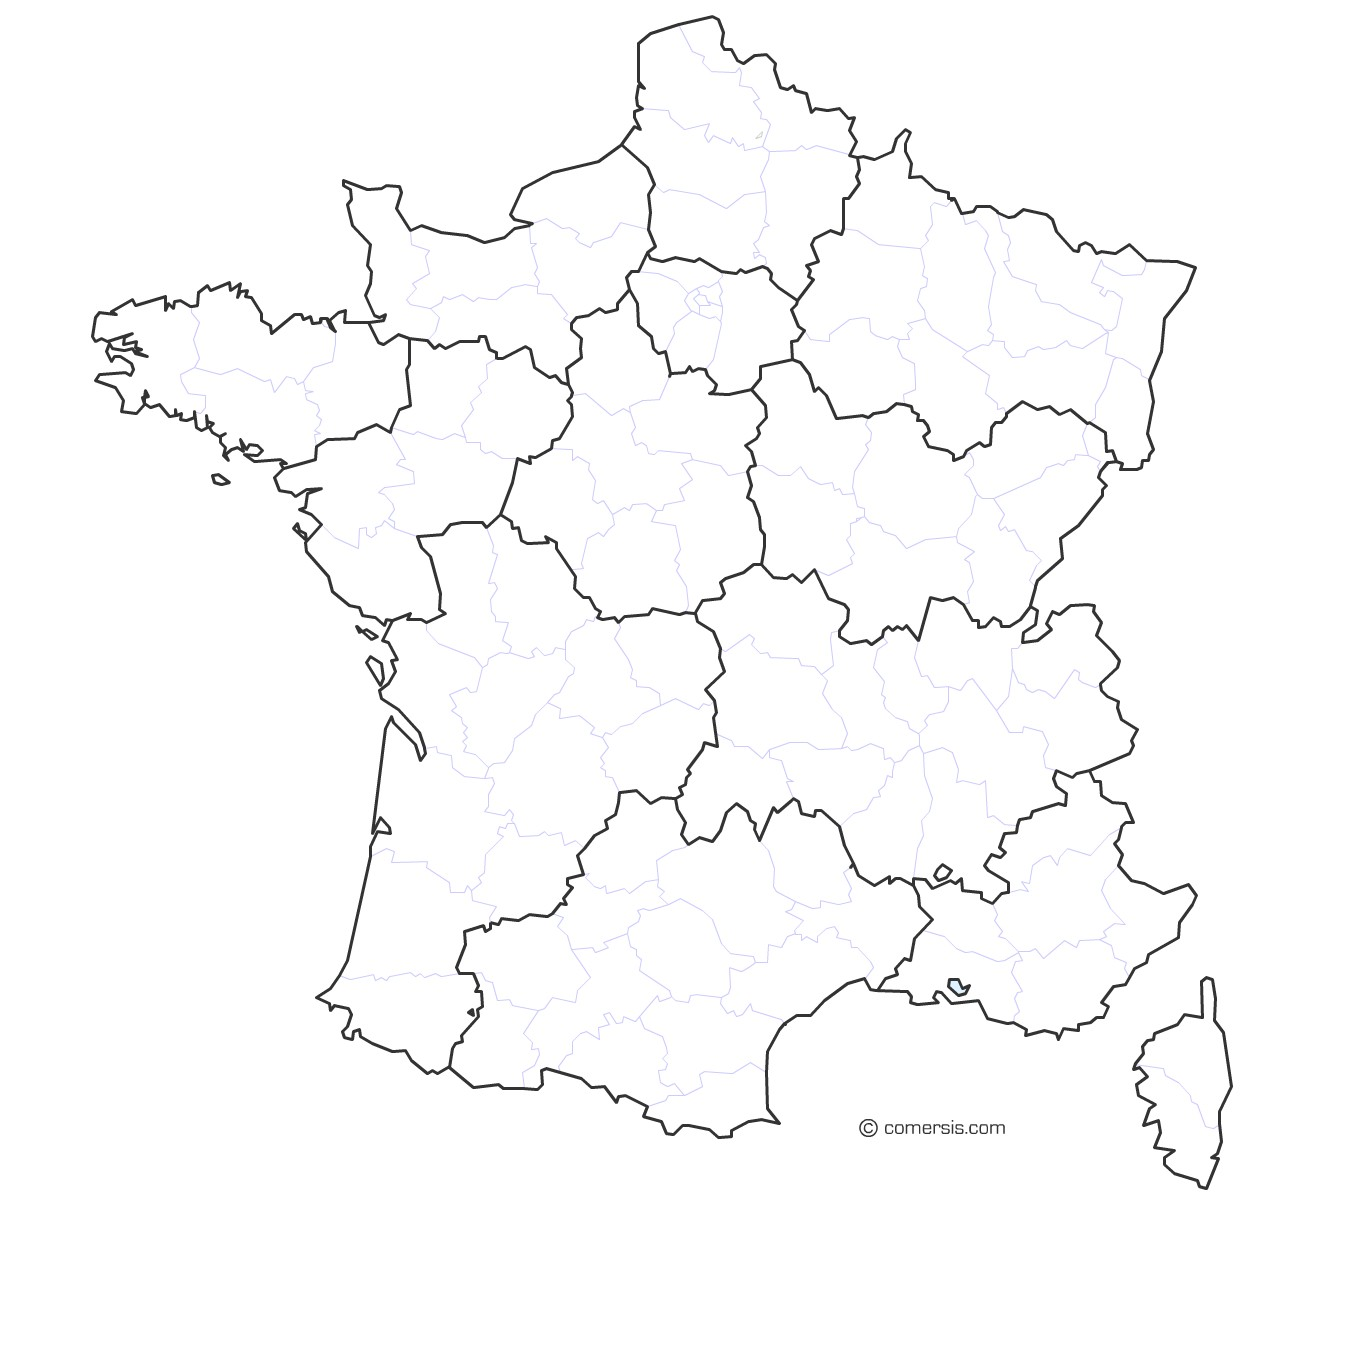 French Regions and departments map